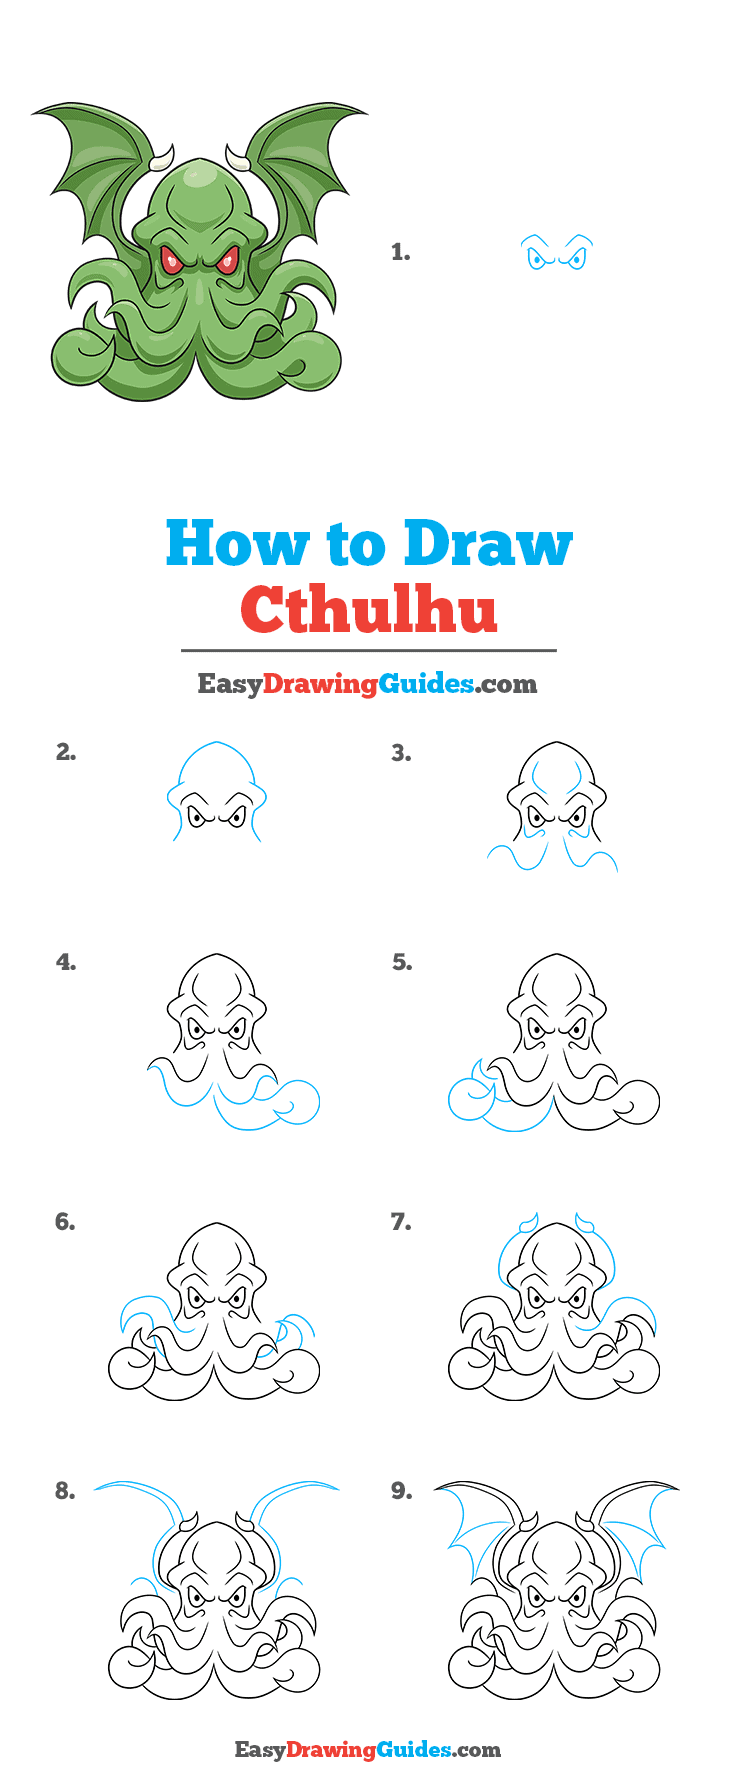 How to Draw Cthulhu Step by Step Tutorial Image